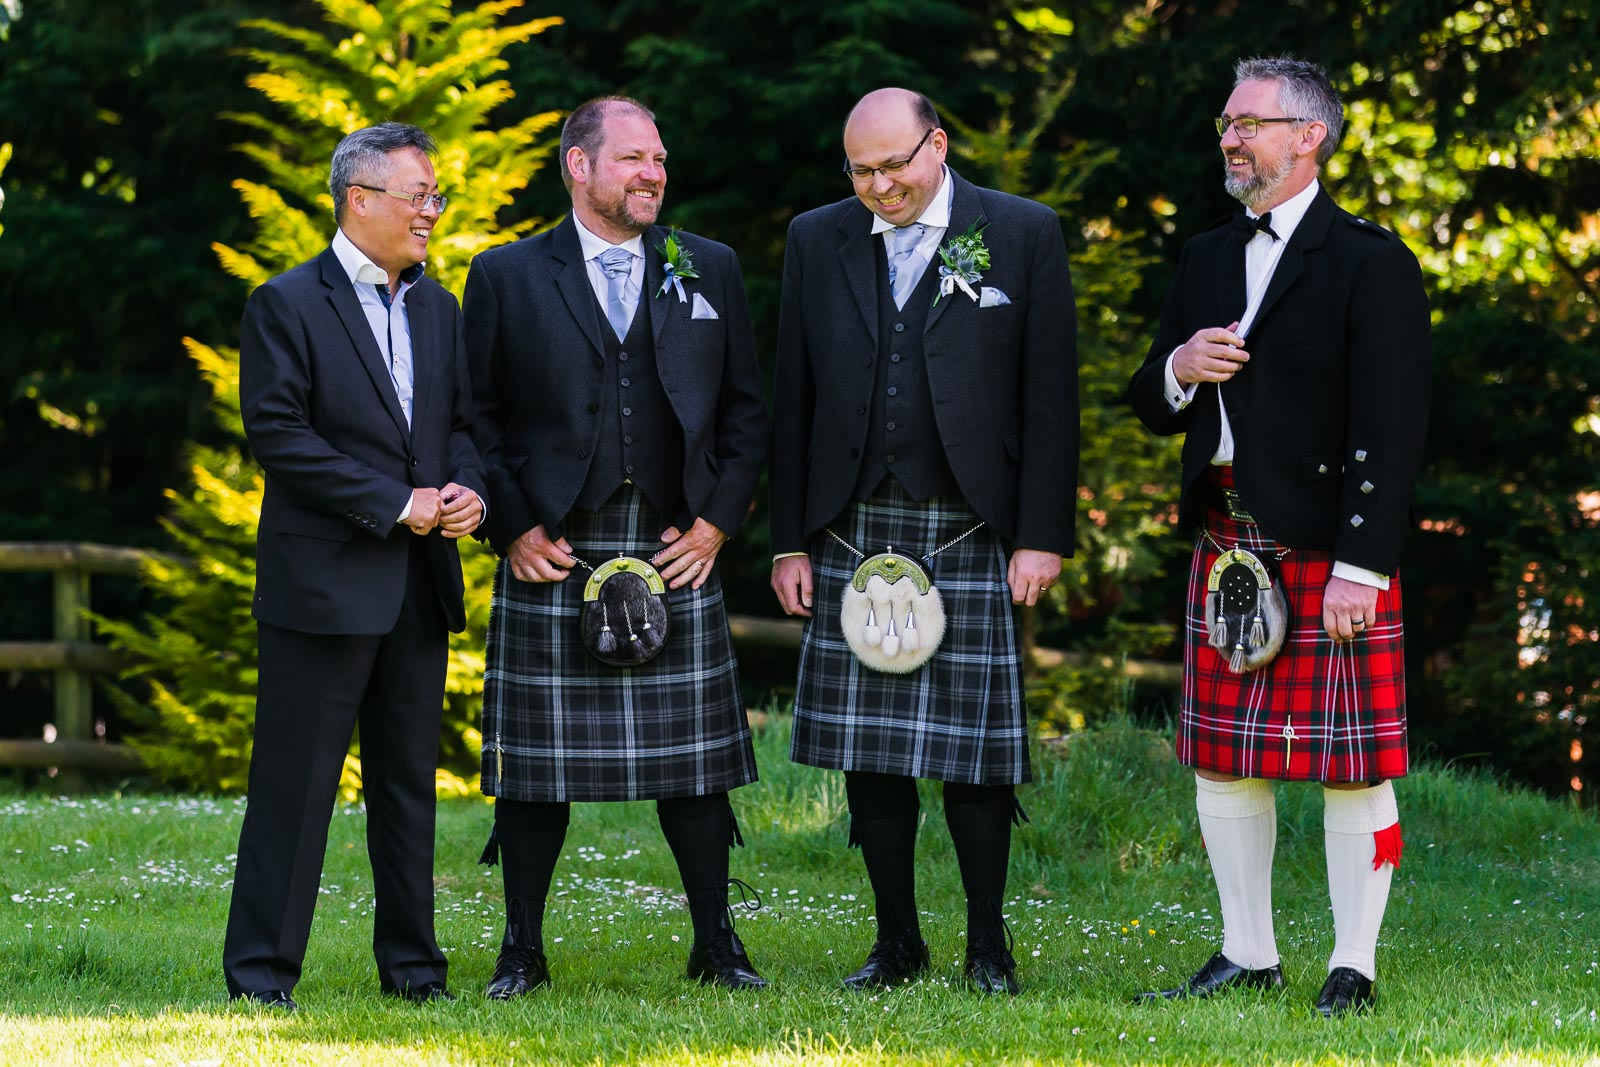 dalhousie_castle_wedding_edinburgh_dearlyphotography (203 of 371).jpg